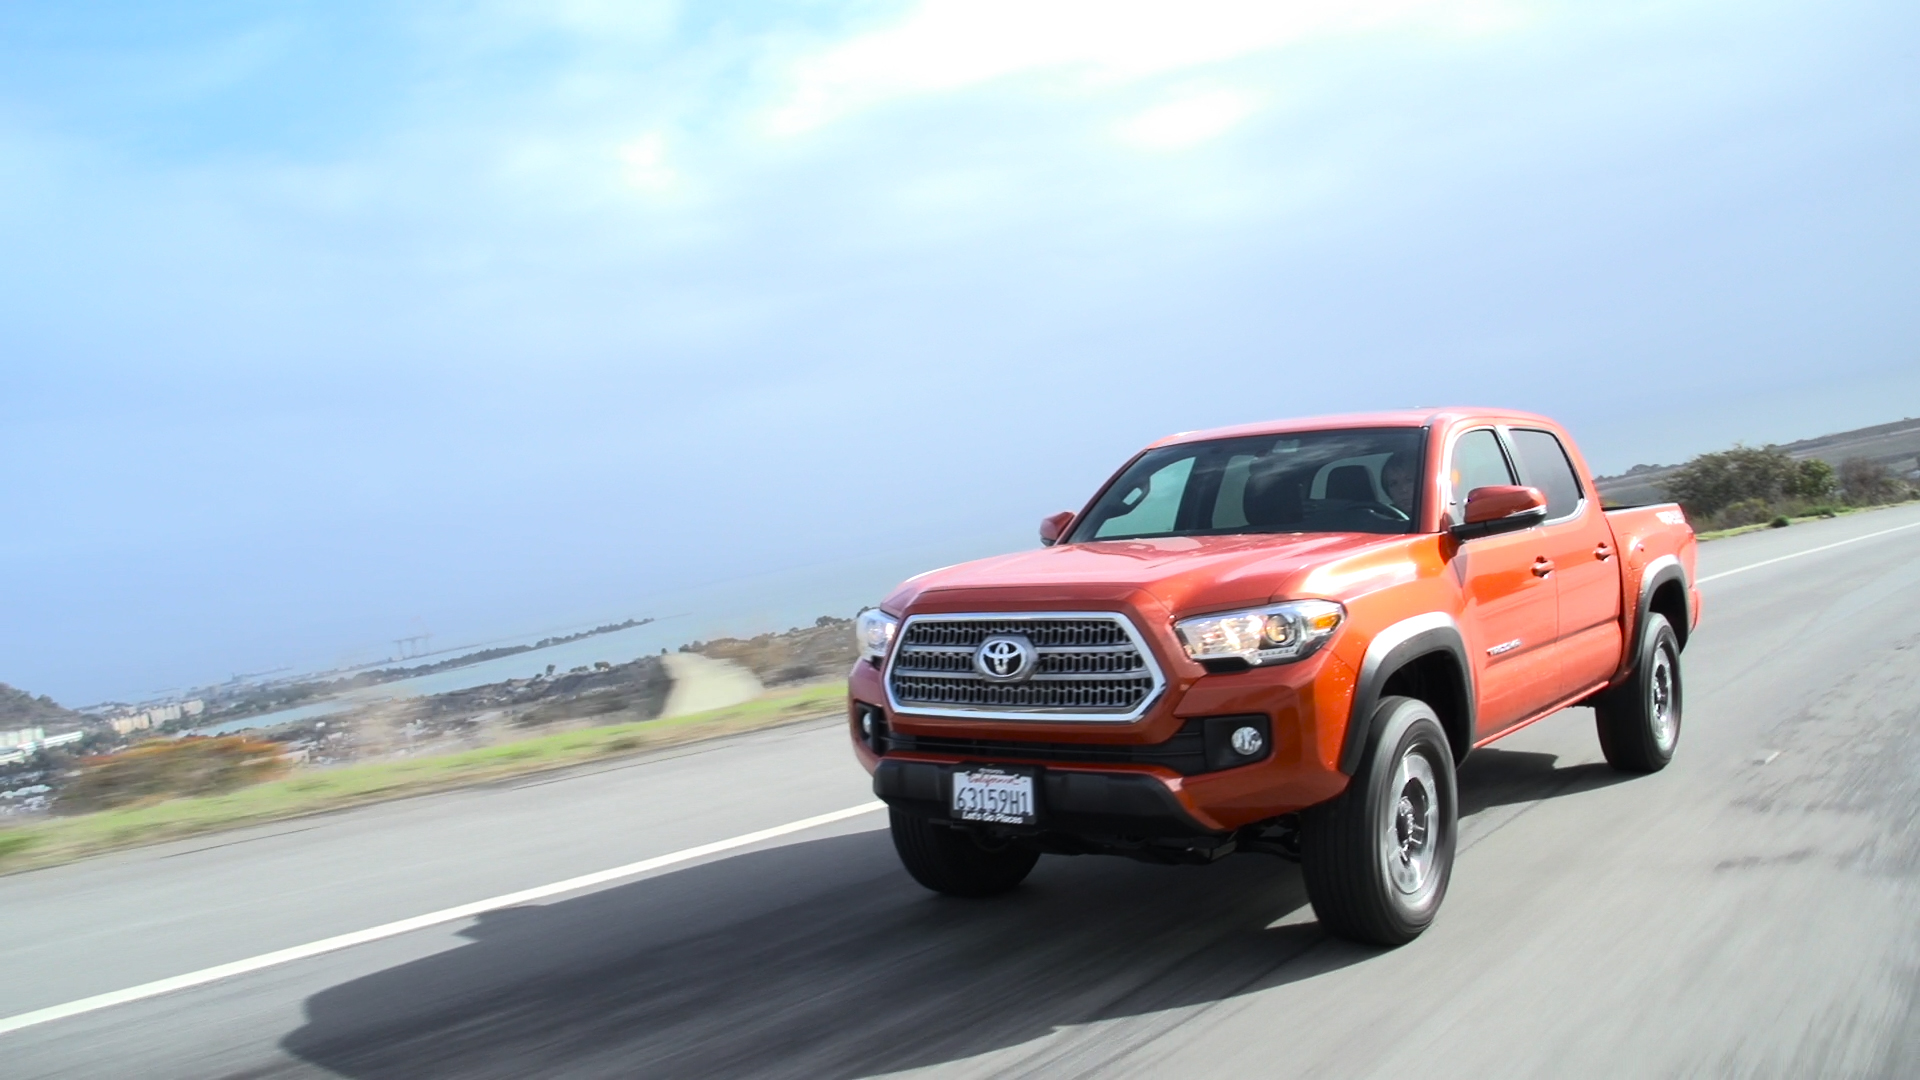 Video: The 2016 Toyota Tacoma TRD 4x4: Pavement is a necessary evil